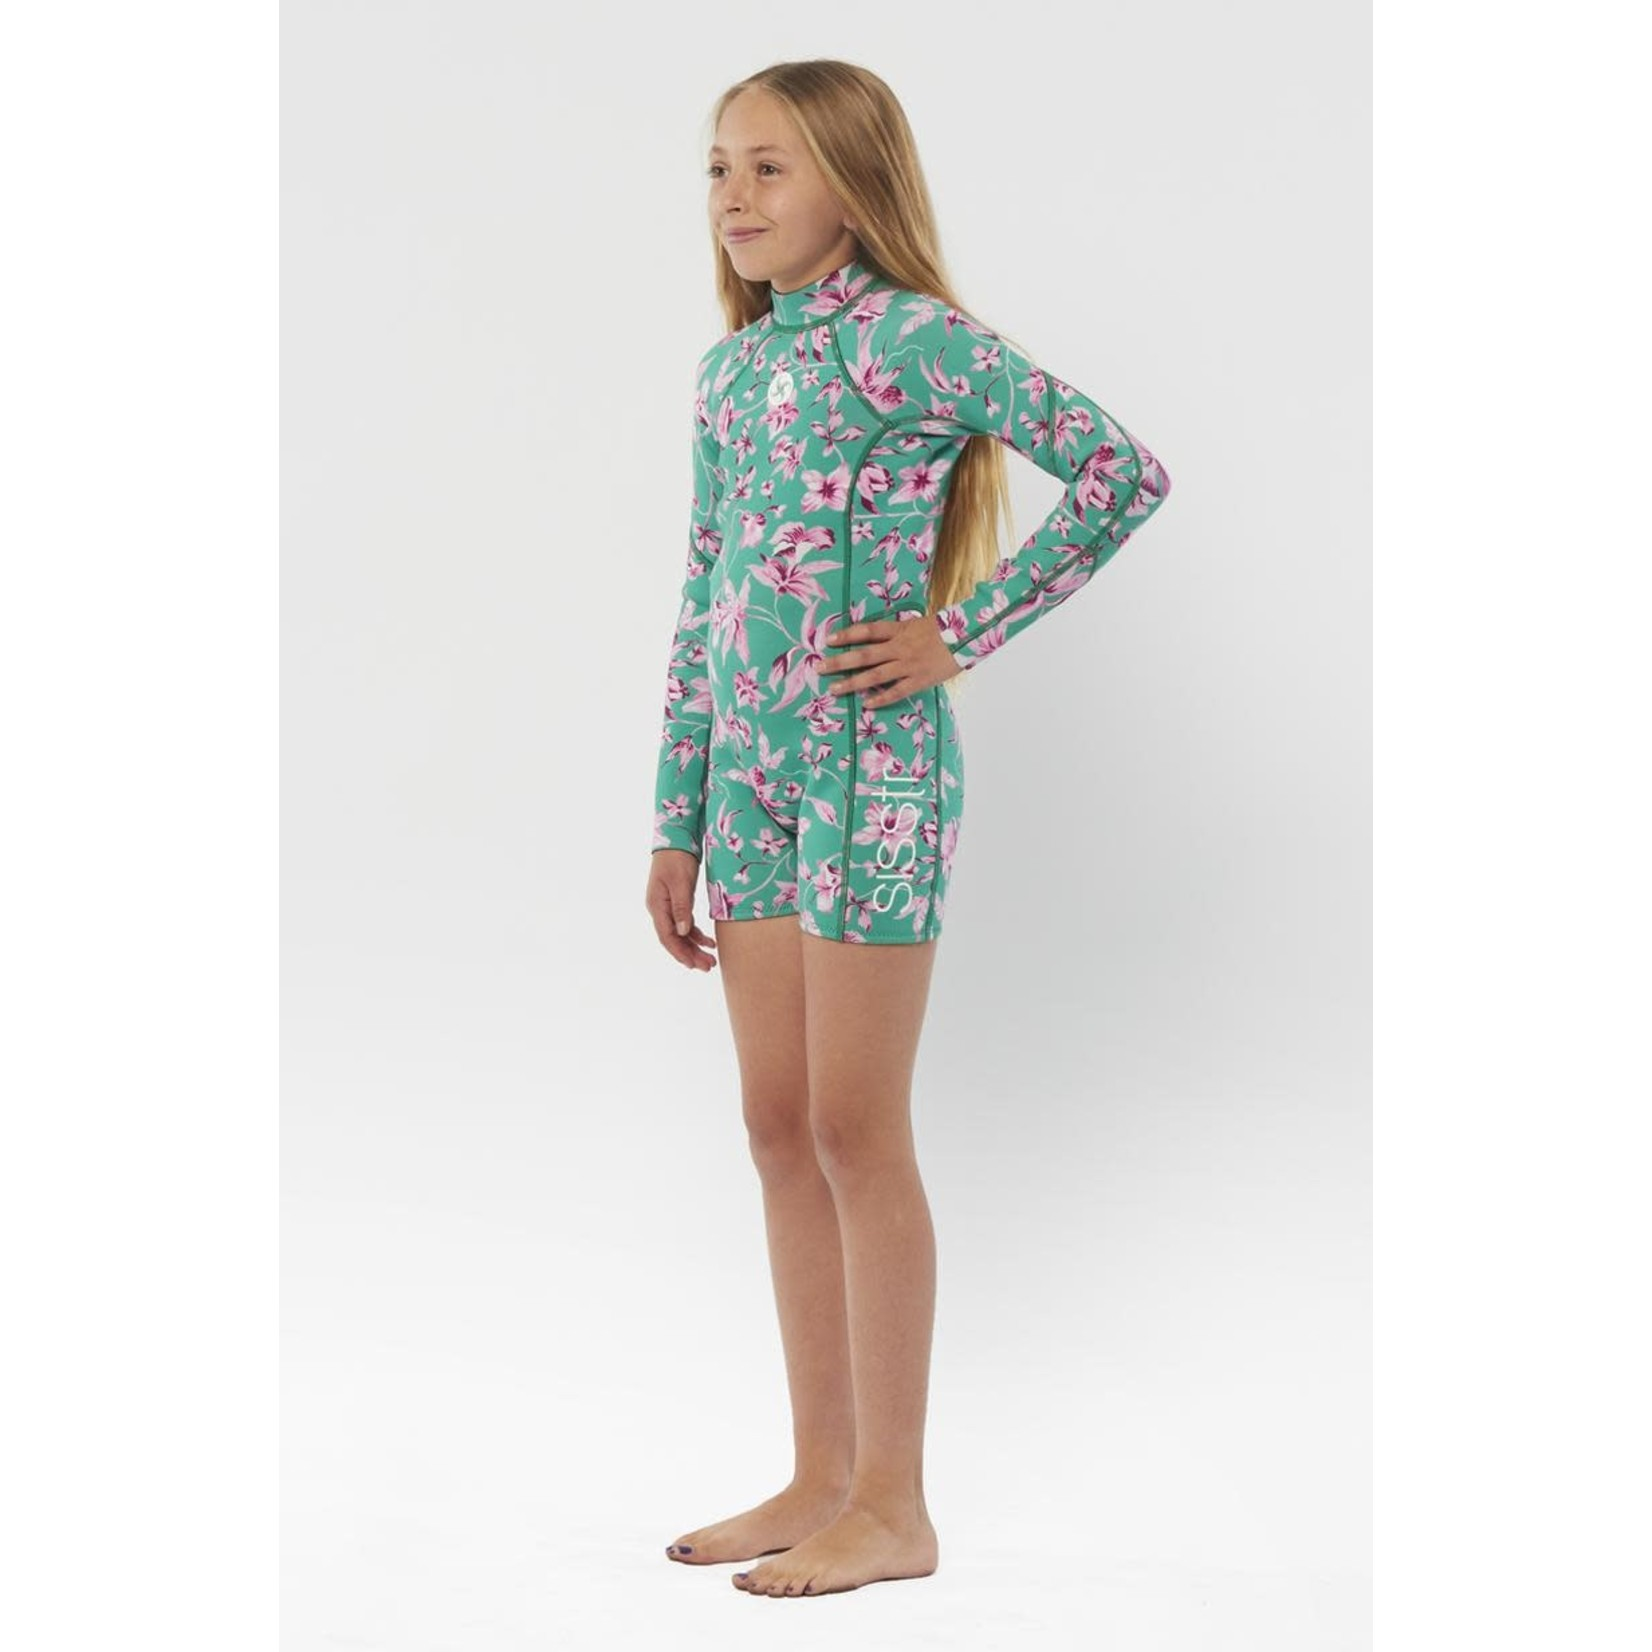 7 SEAS YOUTH 2/2 LS SPRING SUIT